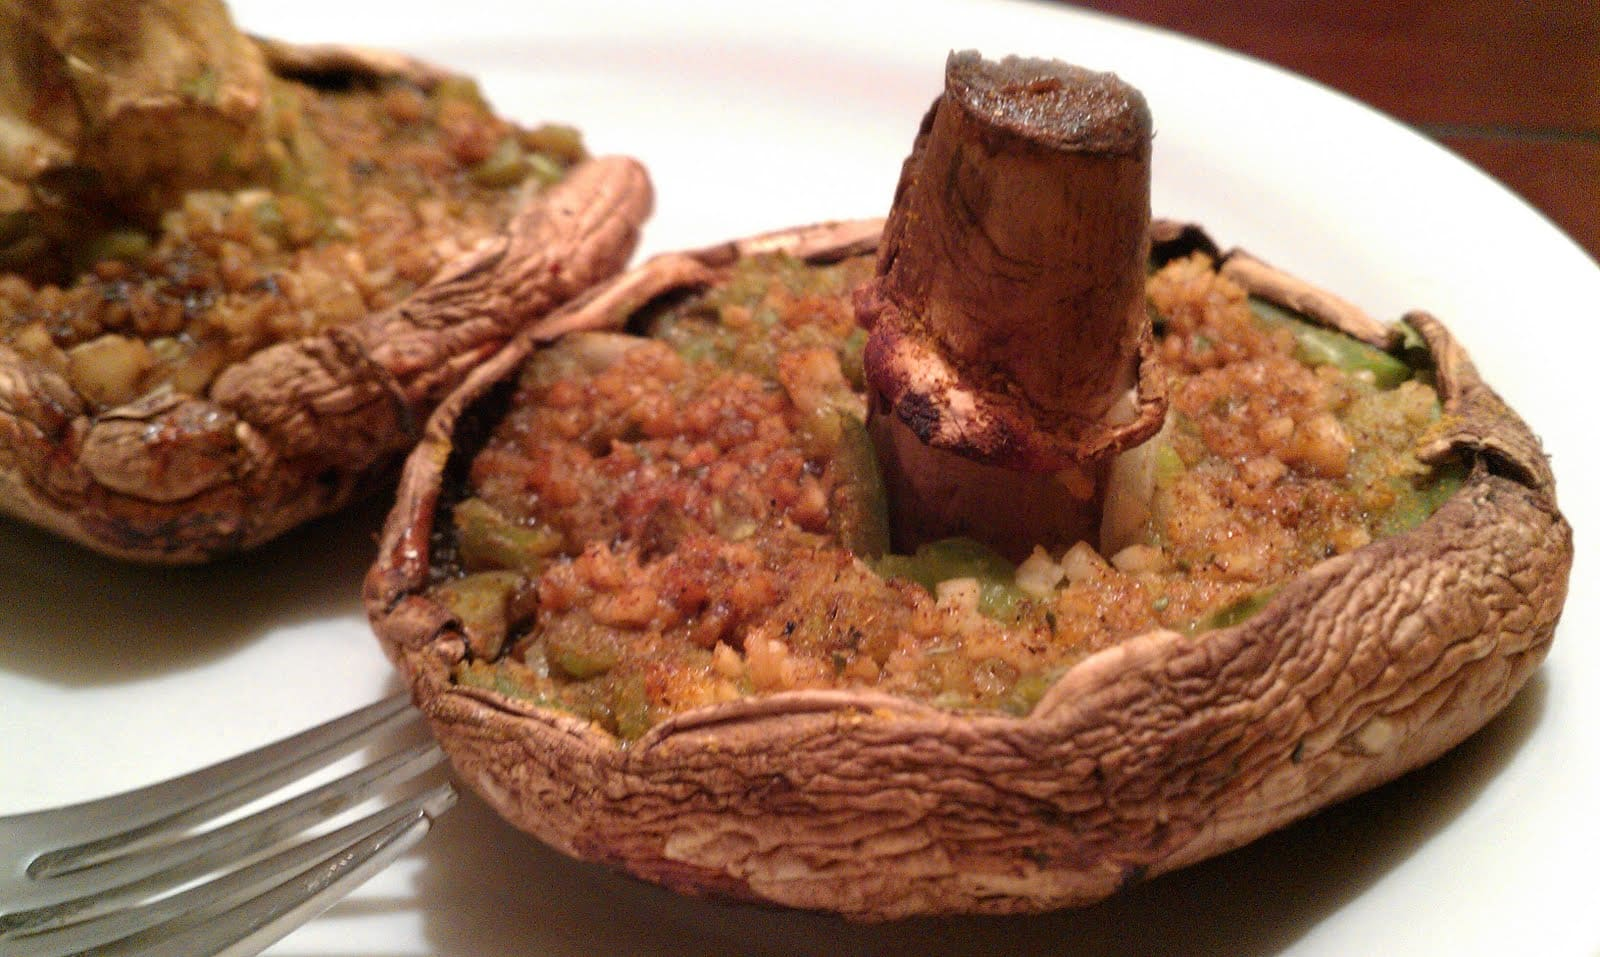 Grilled Portobello Mushrooms - Like Mother, Like Daughter